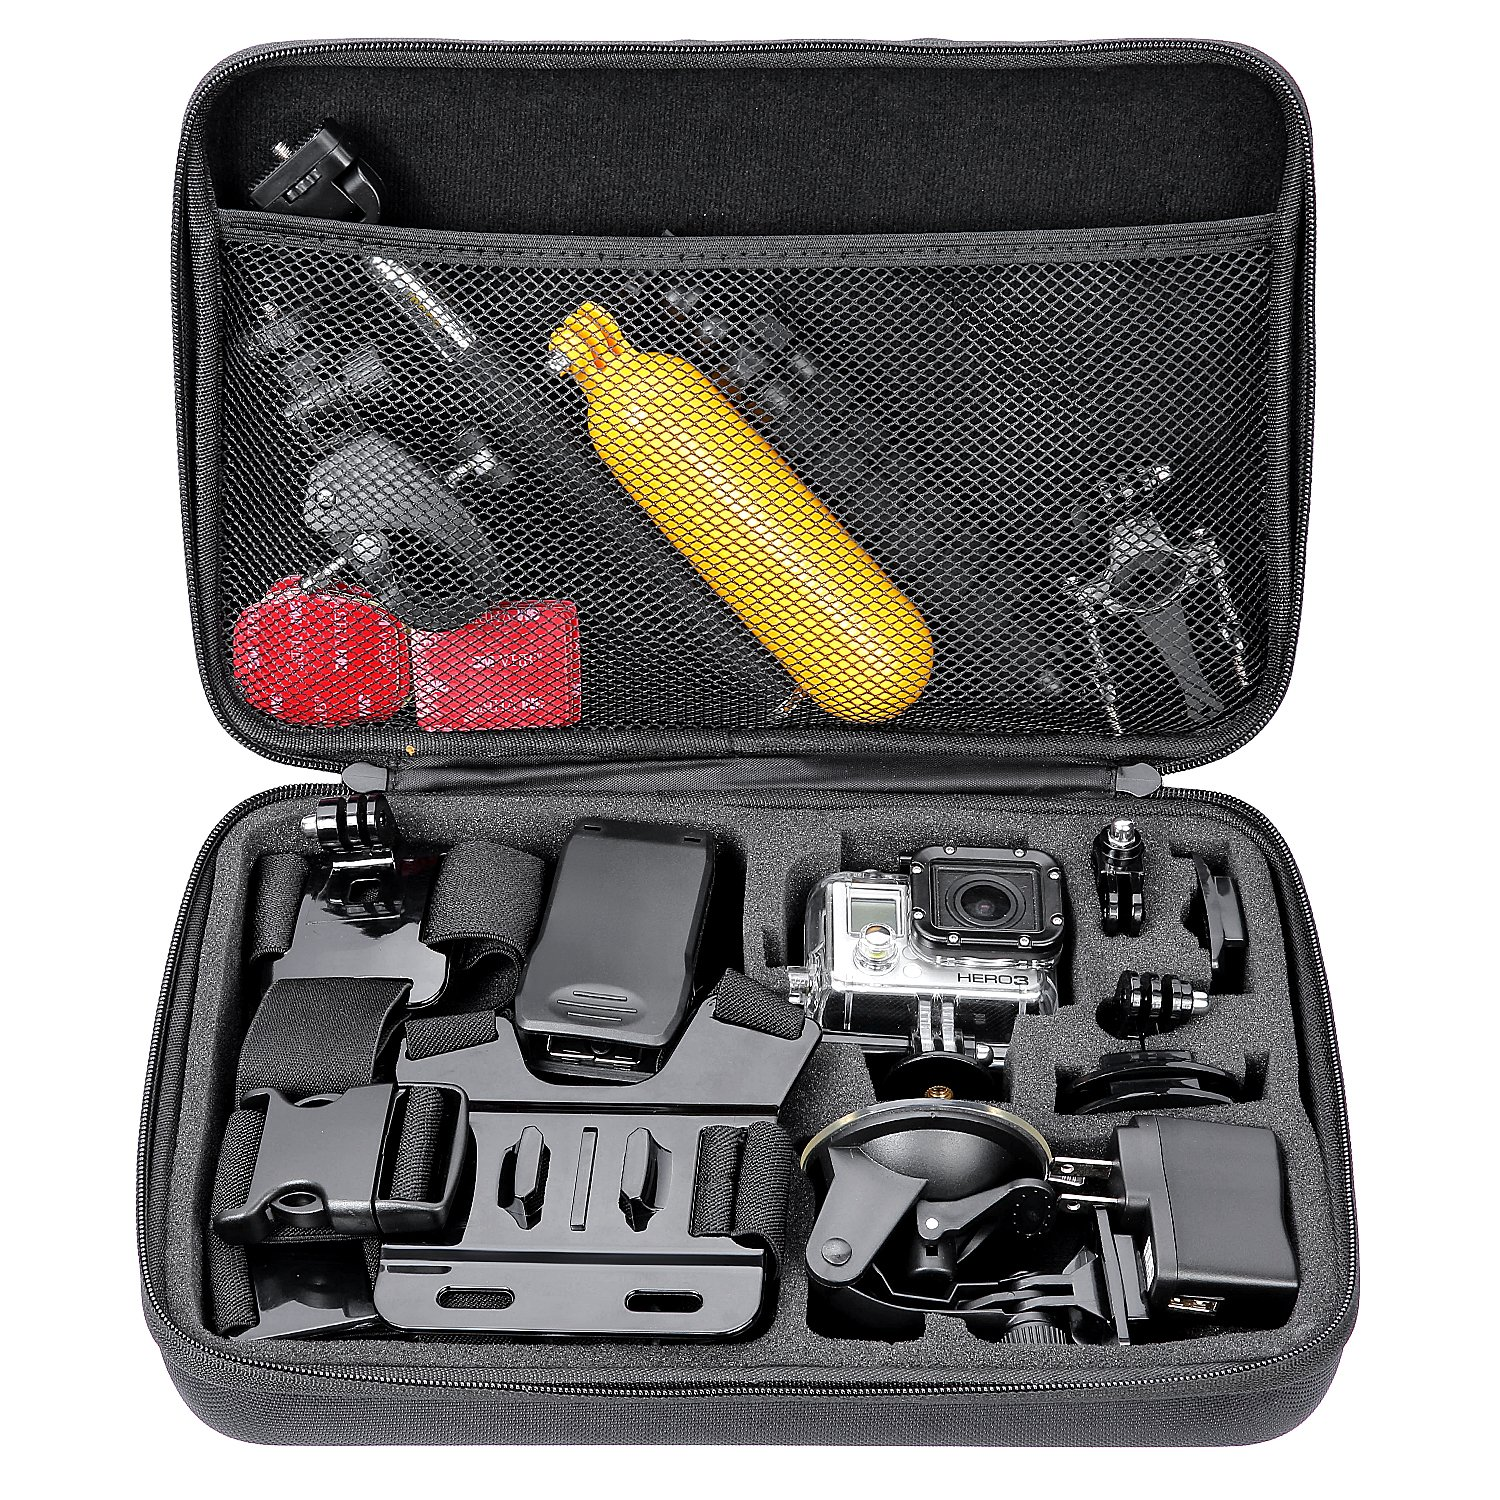 Neewer Shockproof Carrying Case for Gopro Hero 1 2 3 3+ 4 5 6 7 4 Session d3f6ab6aa5f79